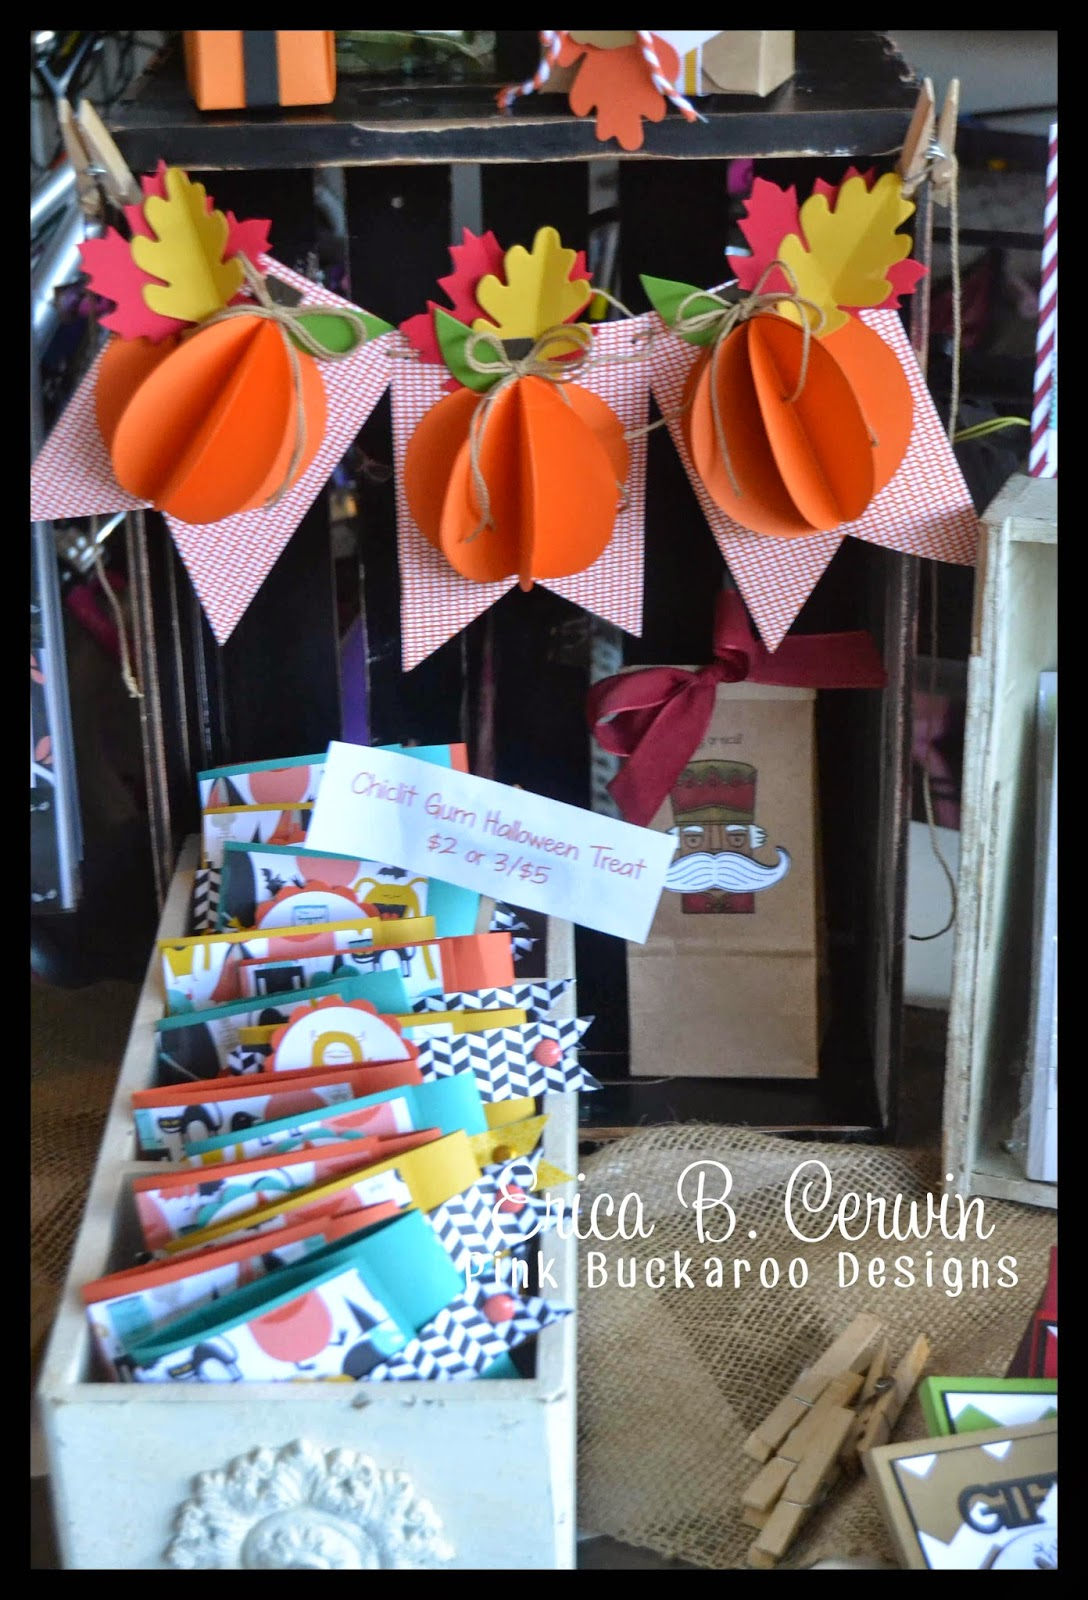 Pink buckaroo designs fall craft fairs for Easy halloween crafts to make and sell